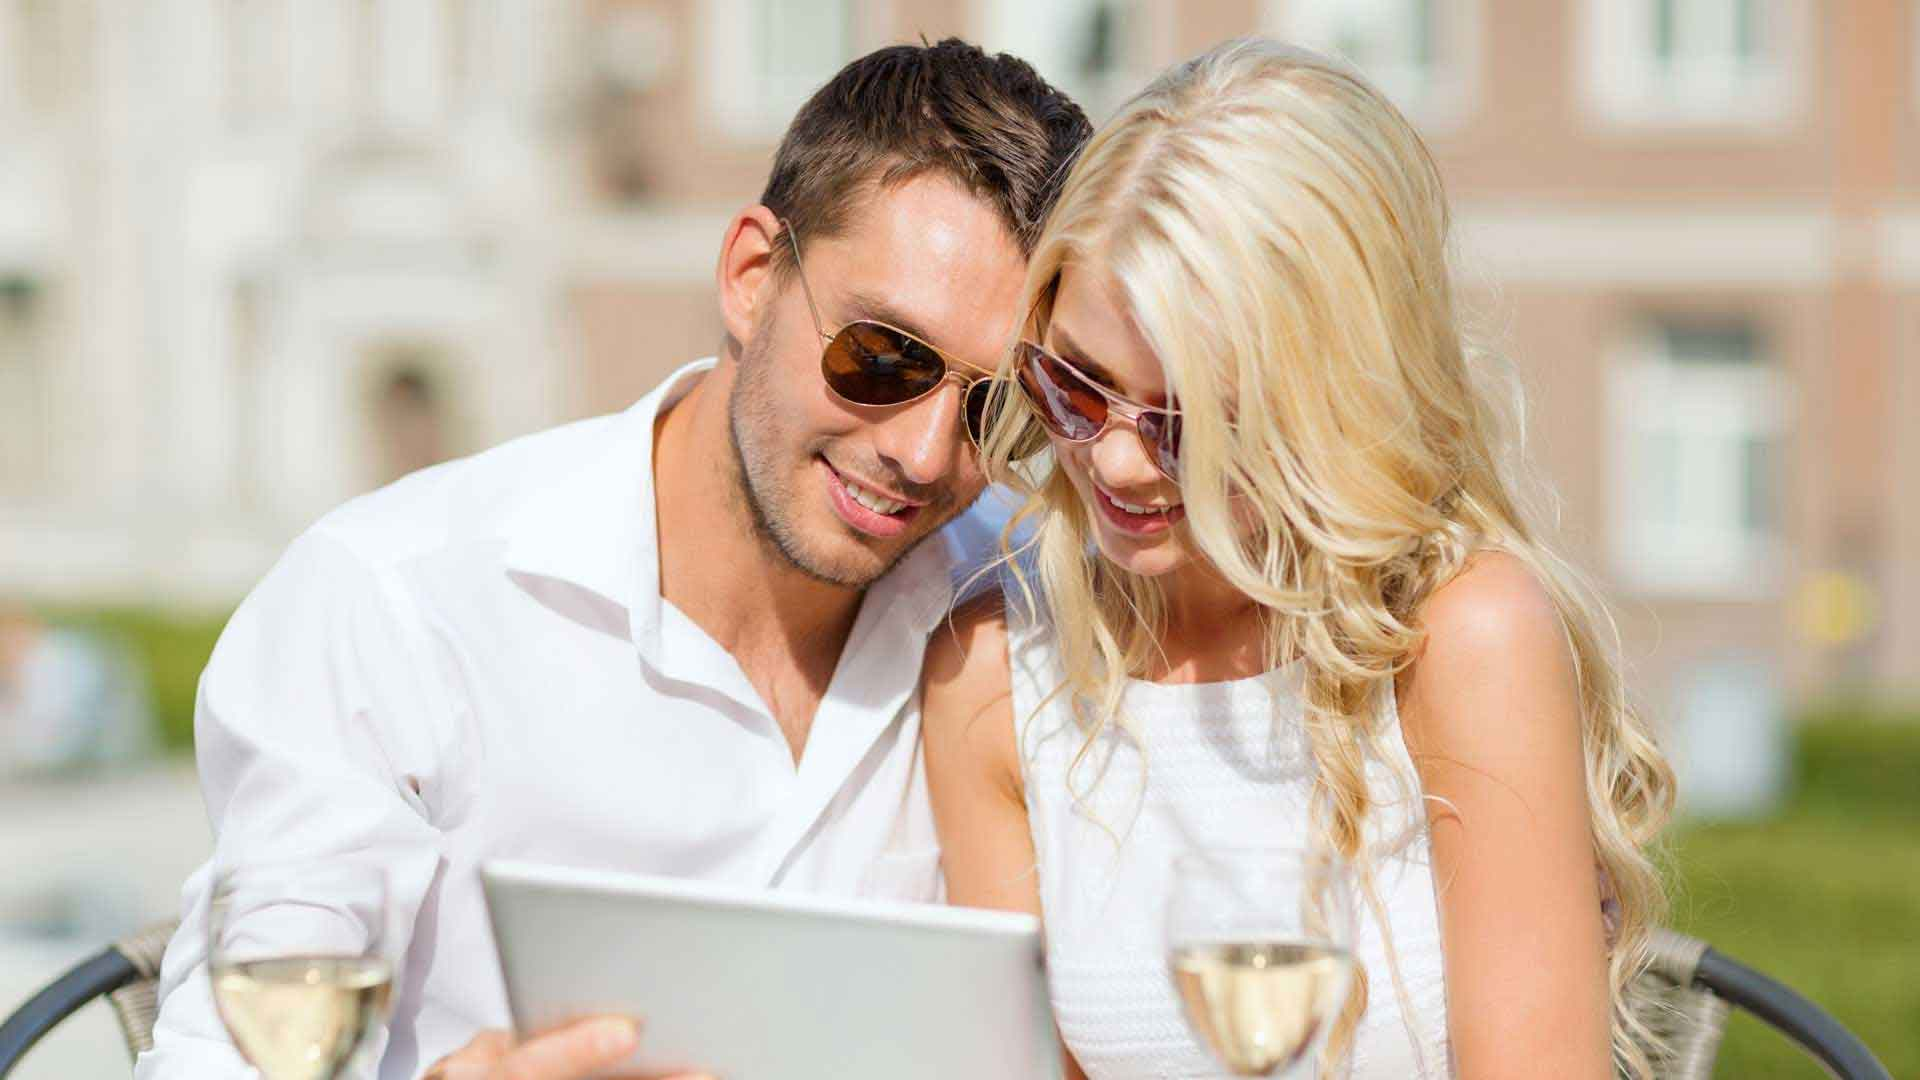 Dateplaats.be online dating, datingsite, datingcommunity